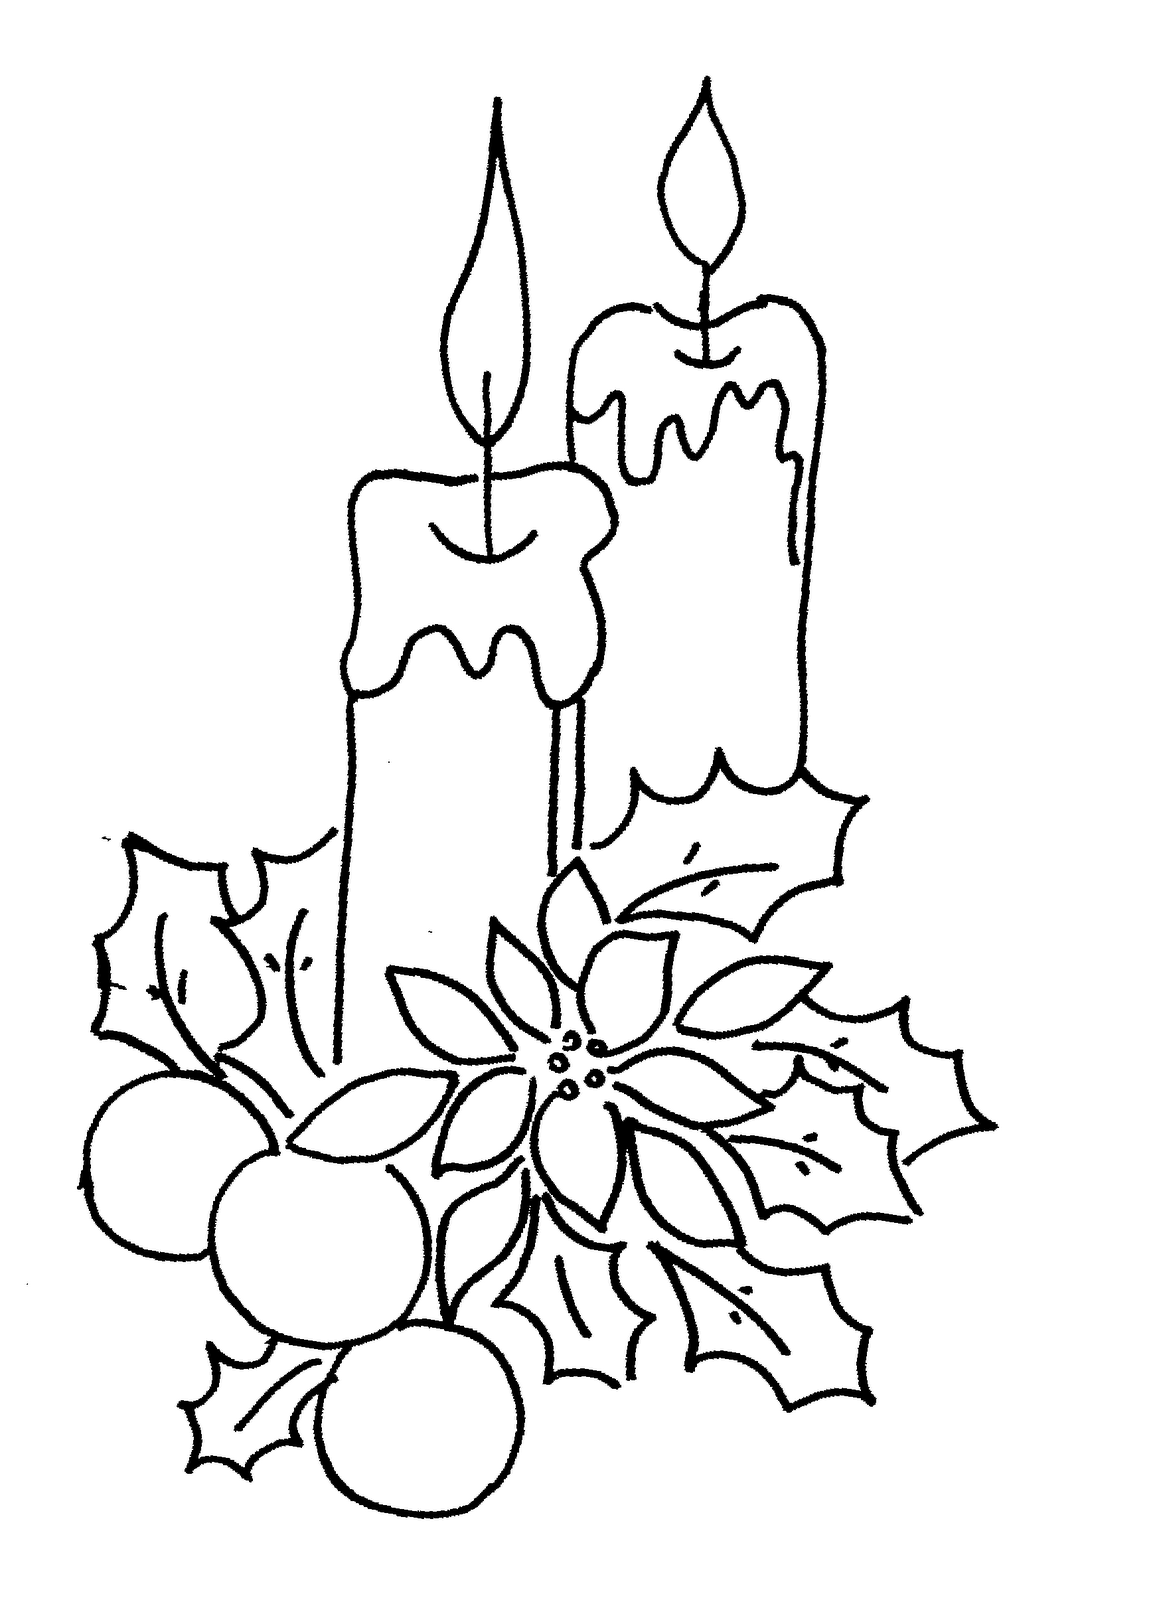 Xmas coloring book pages - Xmas Coloring Pages 4